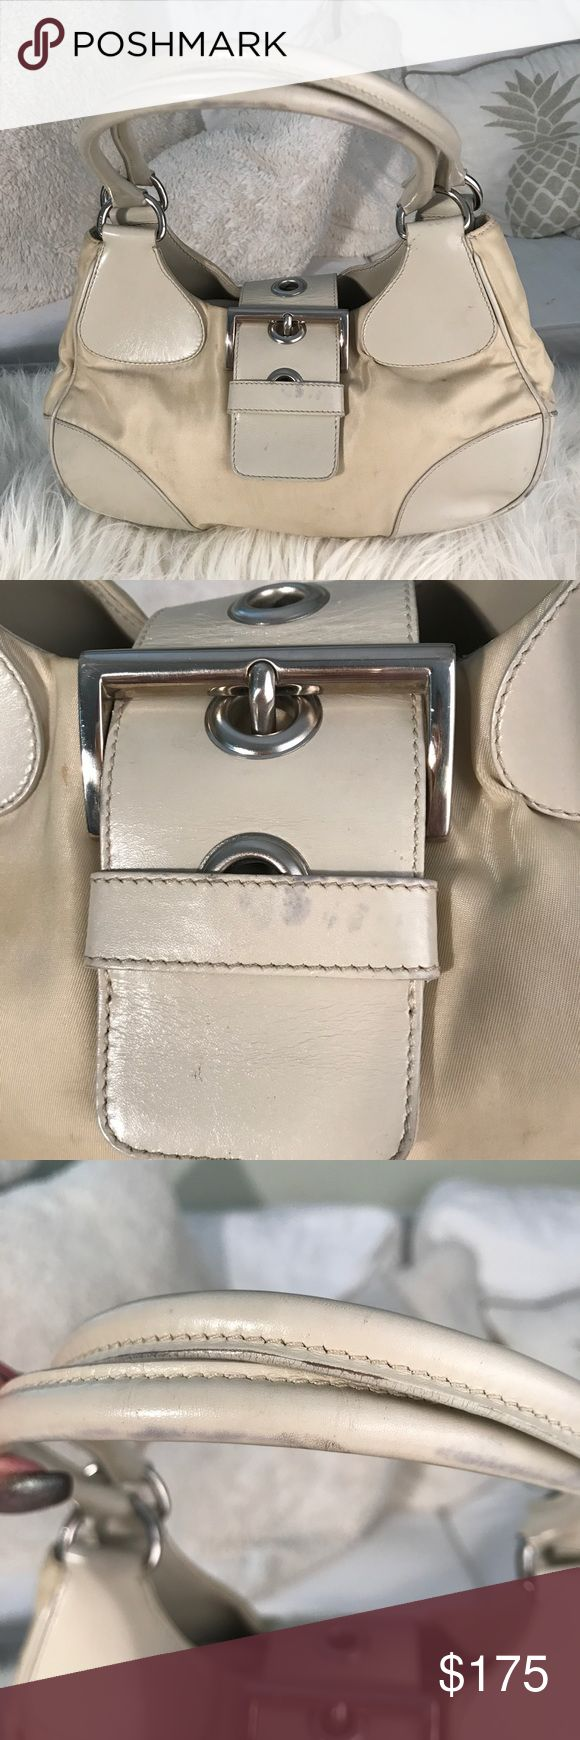 GUC Prada Buckle Bag AUTHENTIC GUC Prada Buckle Bag AUTHENTIC Cream with silver hardware. Purchased from Neiman Marcus. See photos for typical wear and tear. Interior is practically perfect no rips tears stains or other flaws. Exterior has some wear on handles and other areas of leather and one small spot on the side of the fabric which has never been treated or removal attempted. Feel free to ask questions. Price reflects condition not authenticity. Original purchase price $1298. Dust bag…